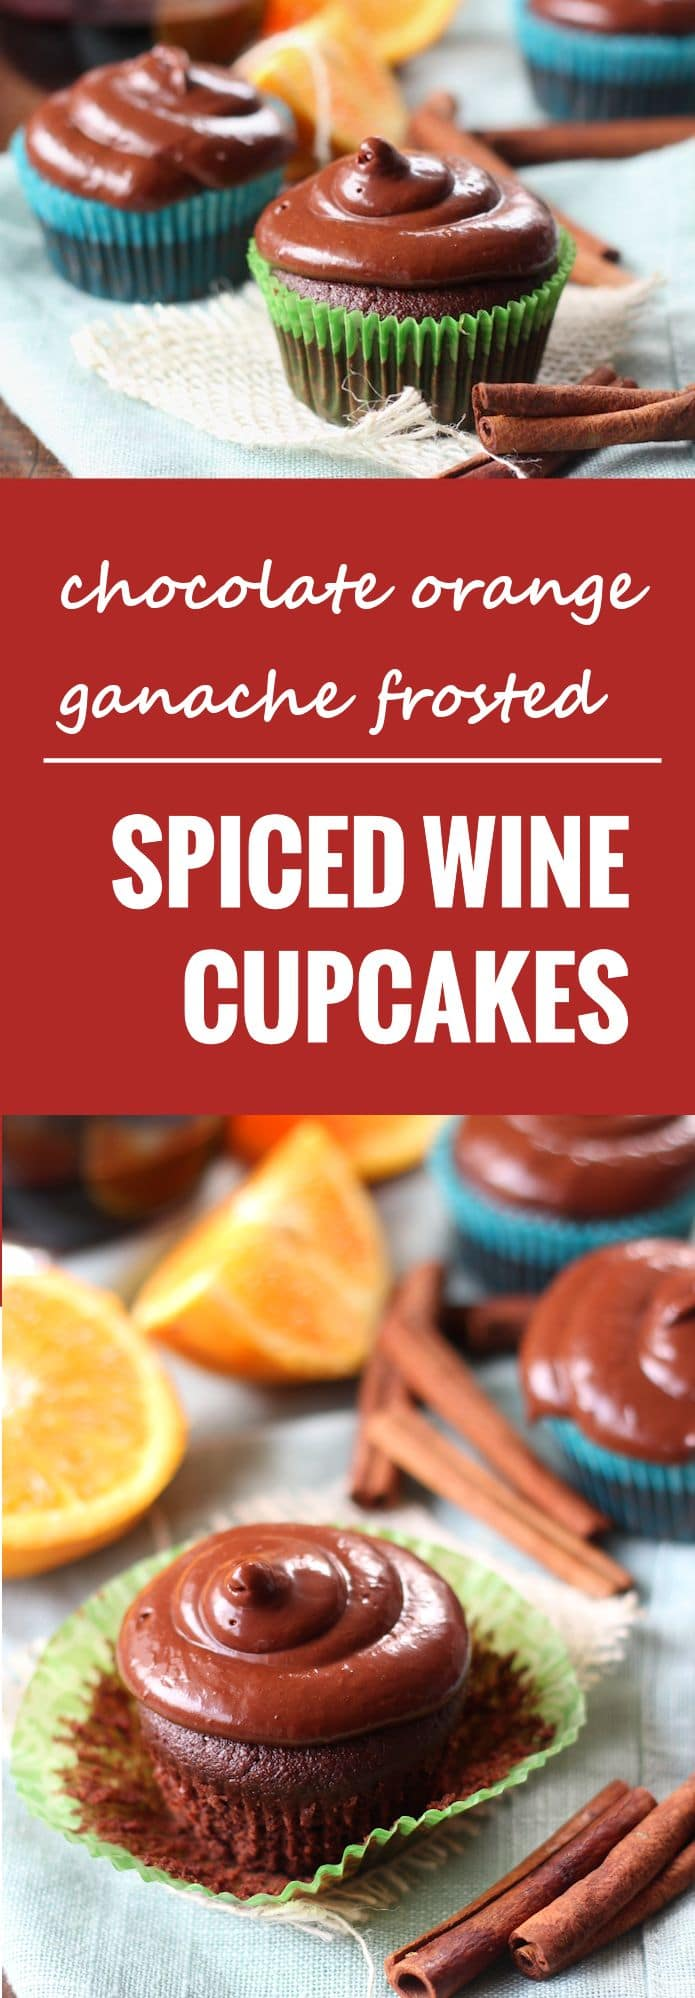 Mulled Red Wine Chocolate Cupcakes with Orange Chocolate Ganache Frosting